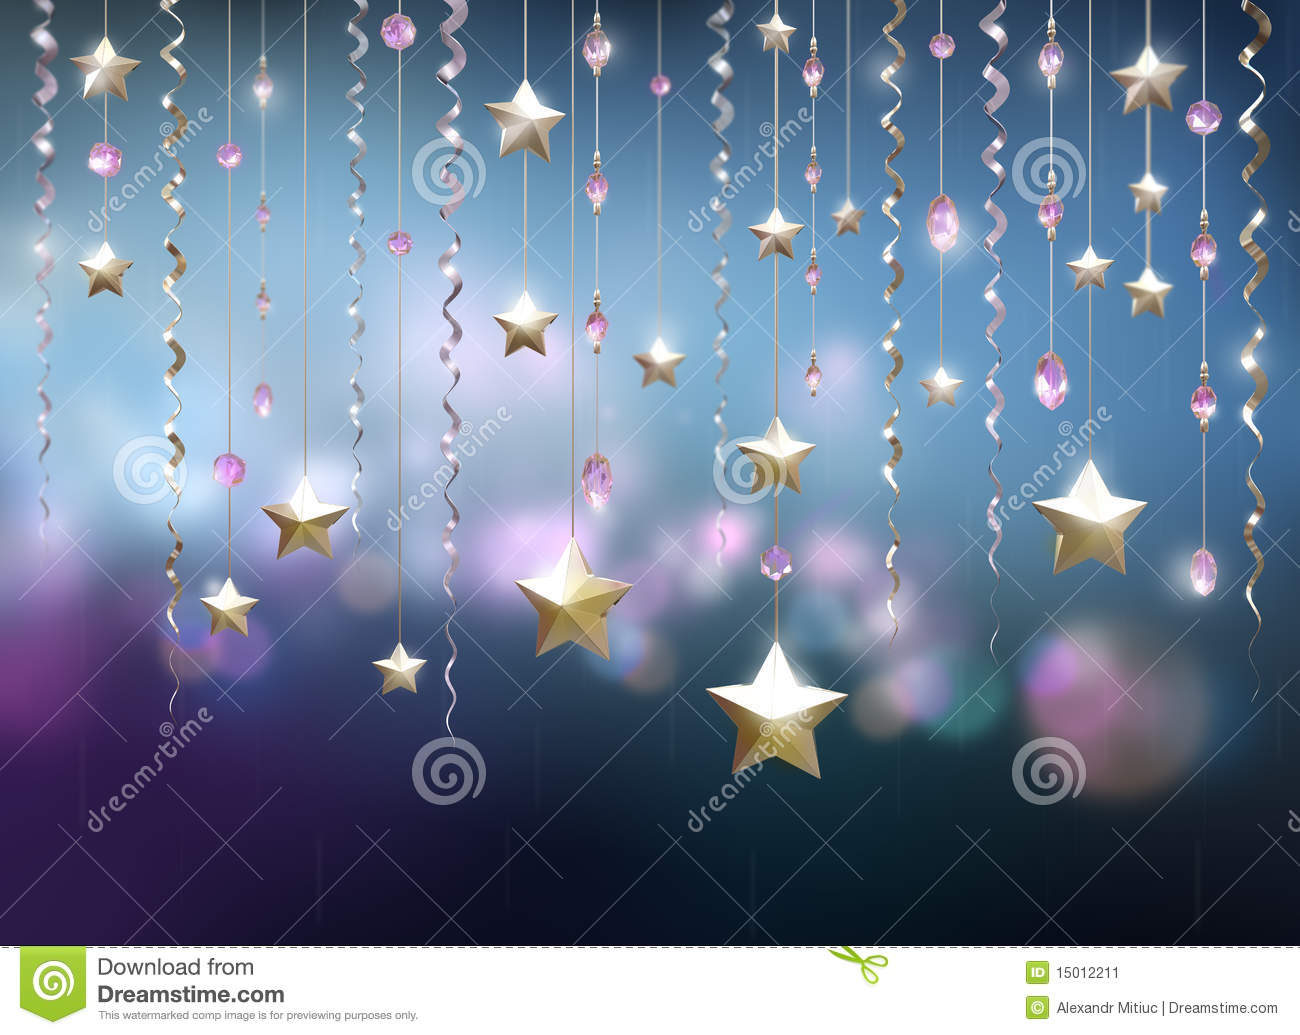 Glamour party abstract background stock illustration illustration of bubble backdrop 15012211 - Glamour background ...